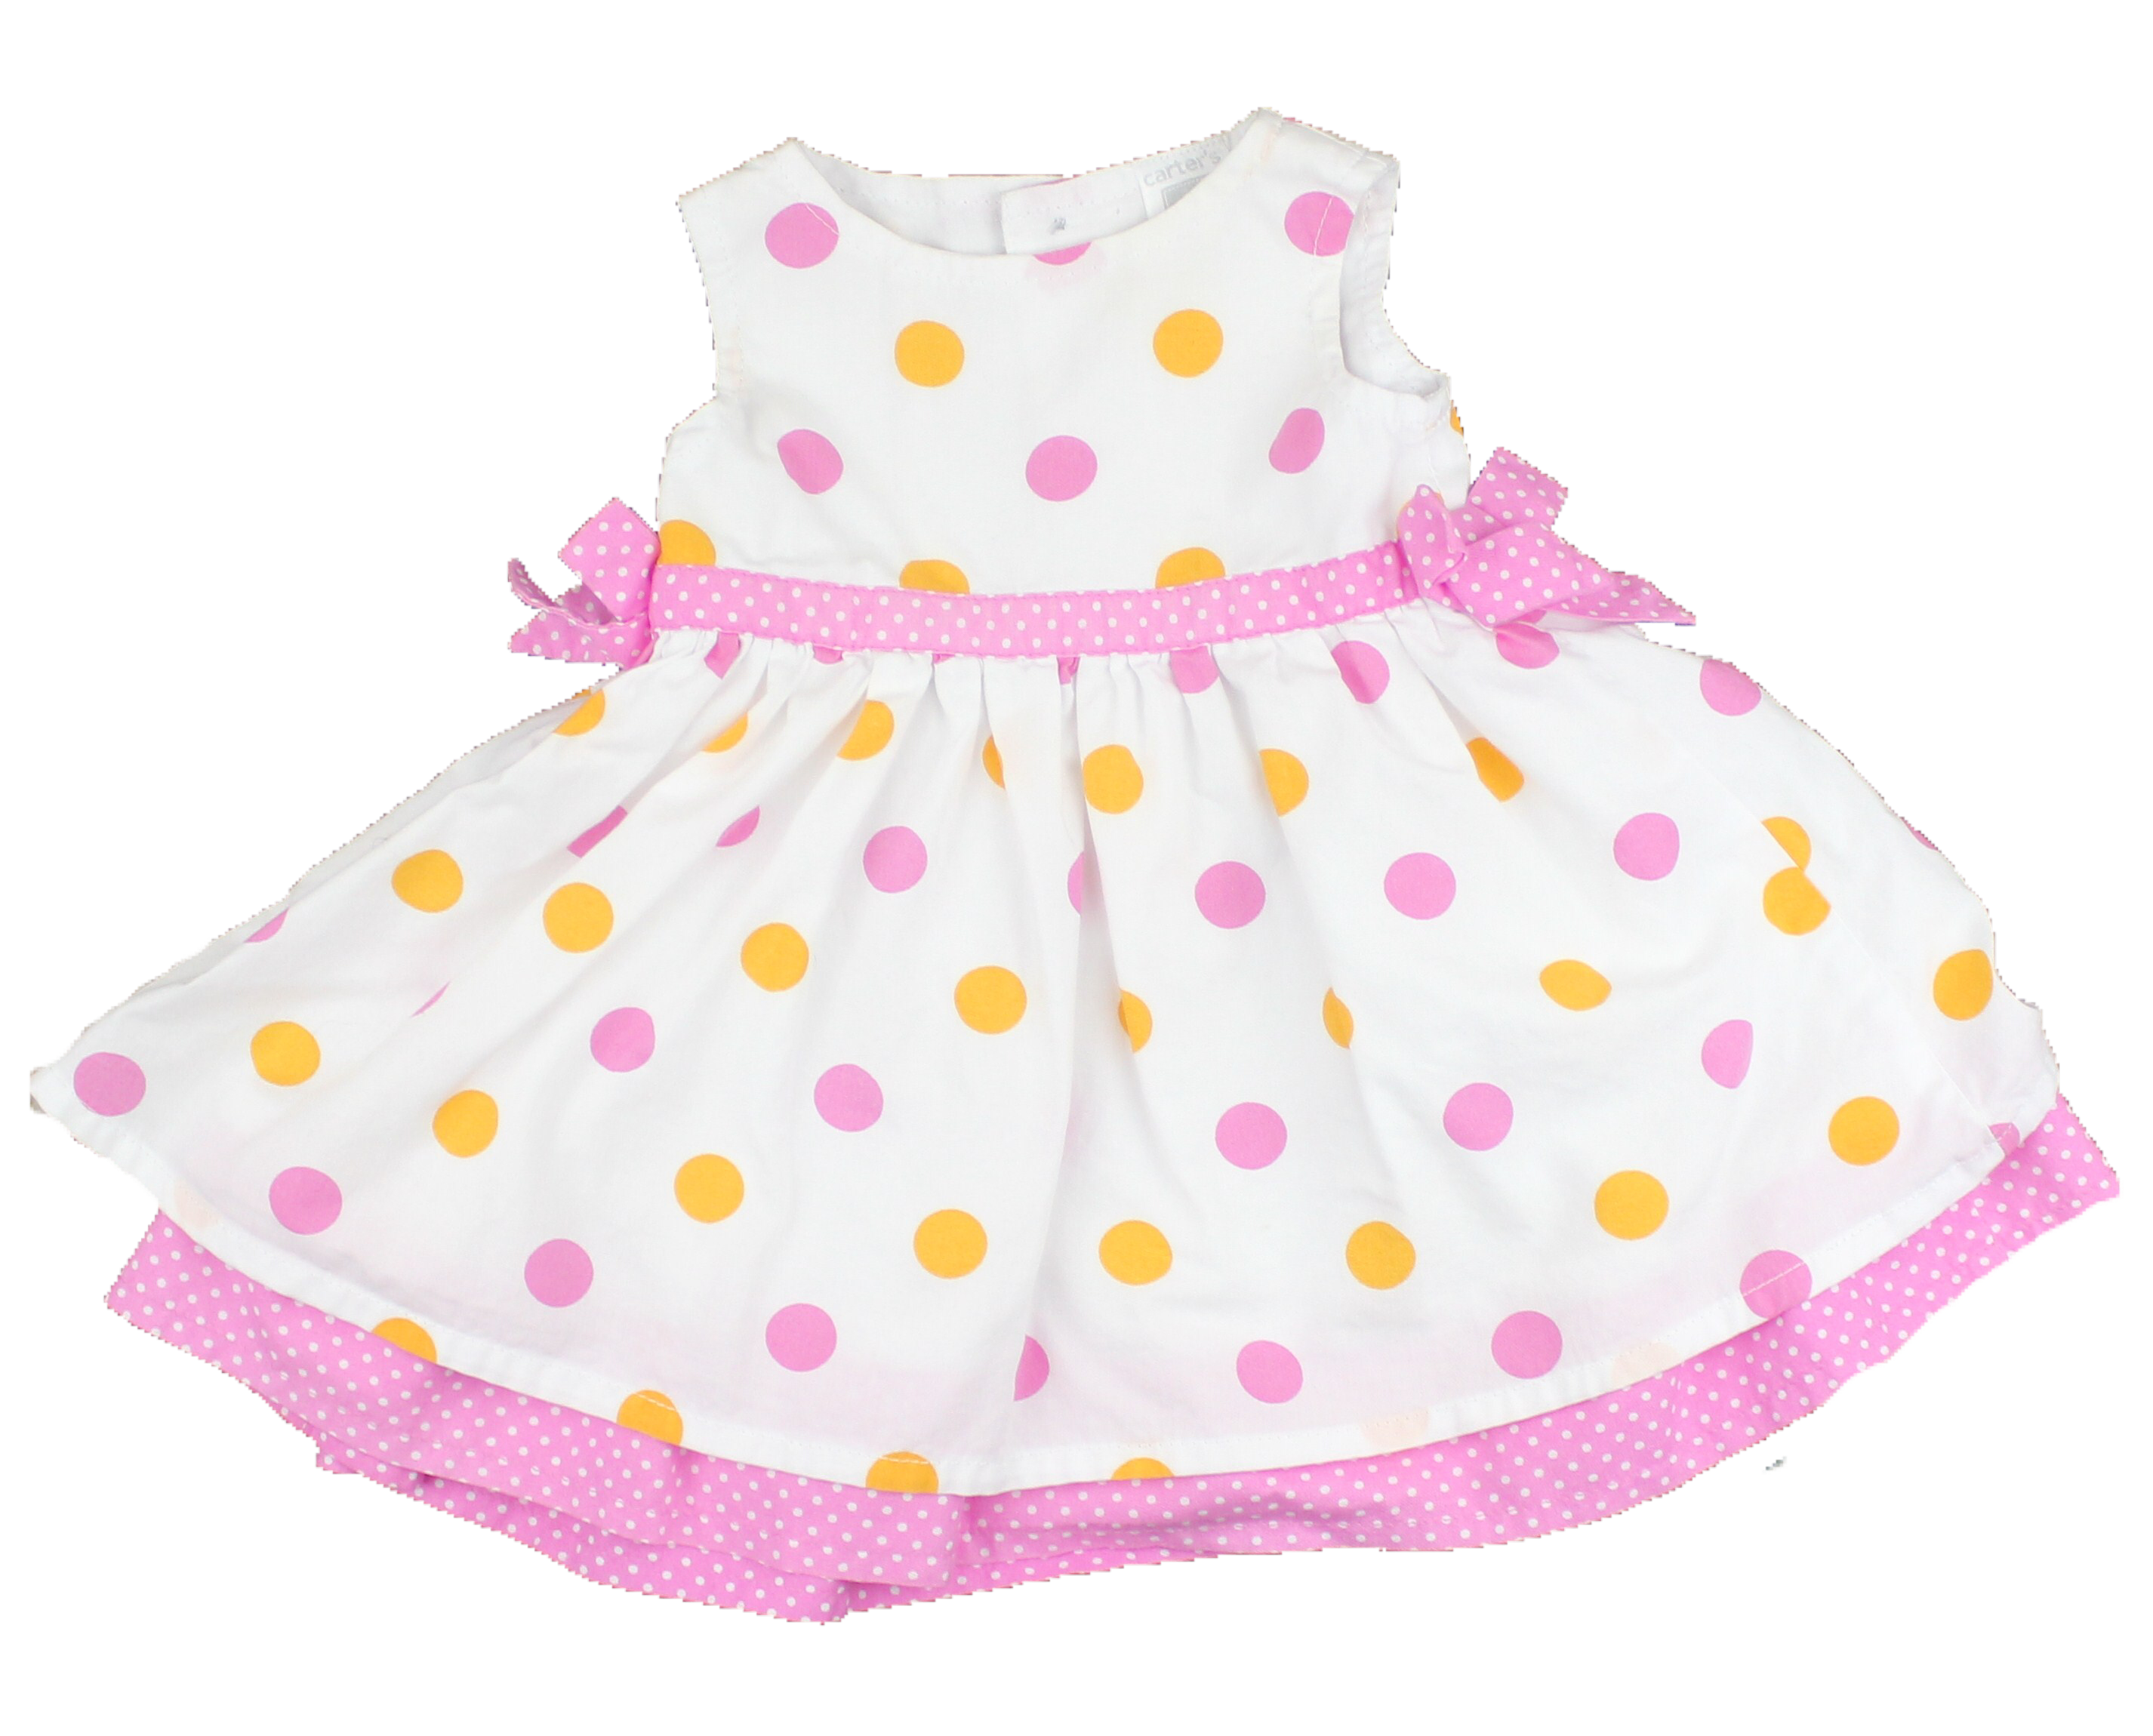 Newborn Baby Girl Sleeveless Summer Dress. Only $7 at May Bug